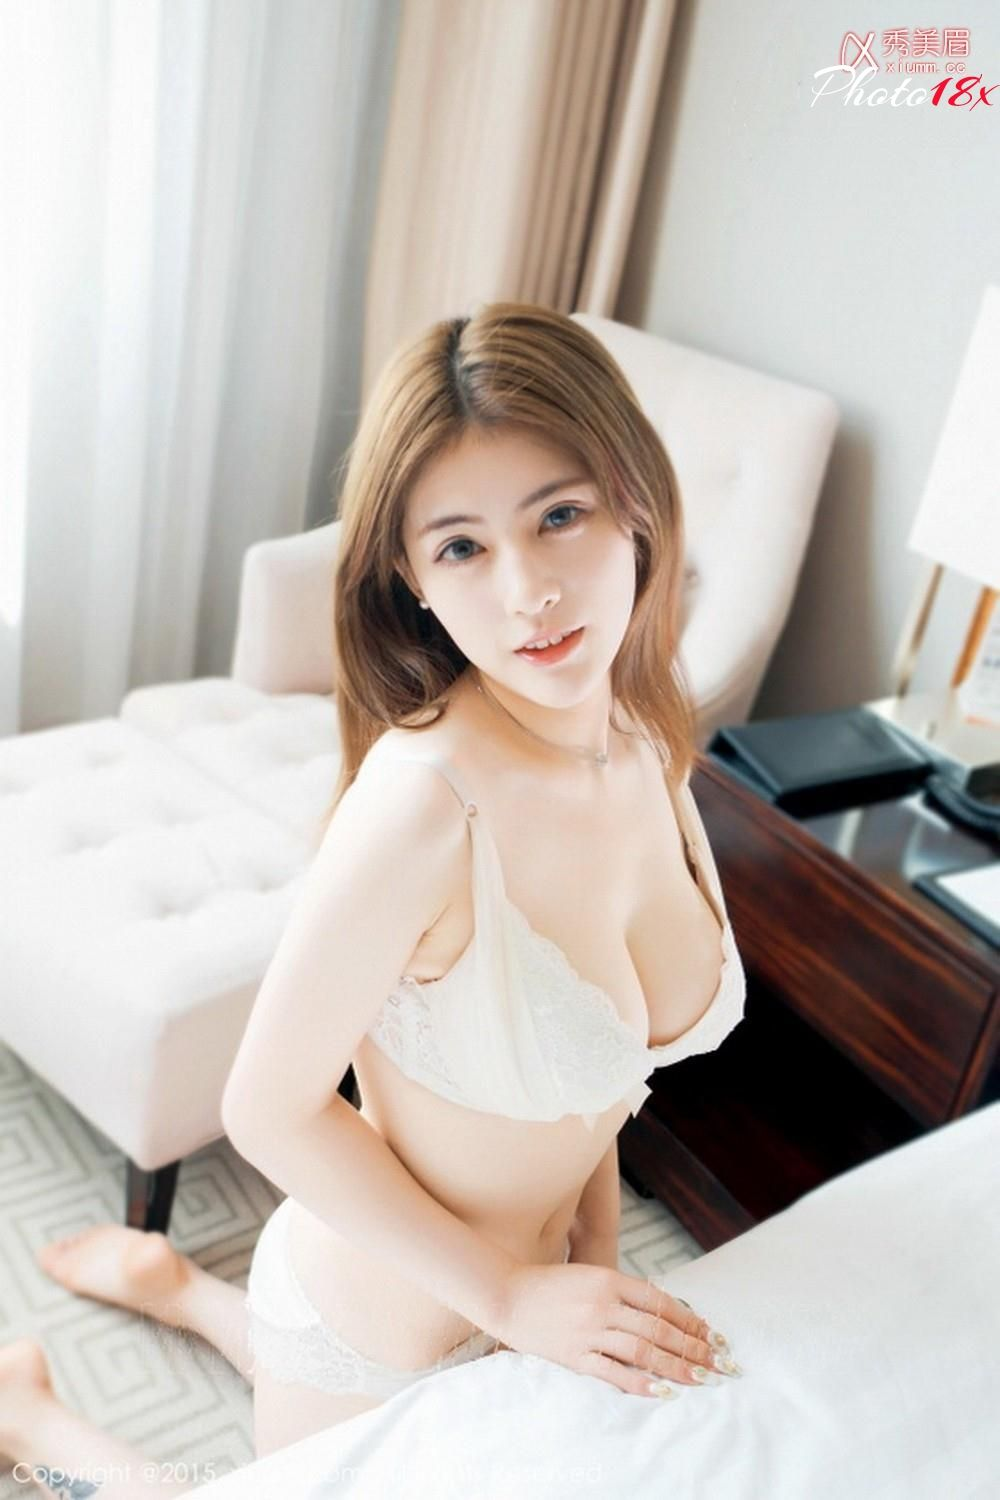 Sexy asian girl bra and panties